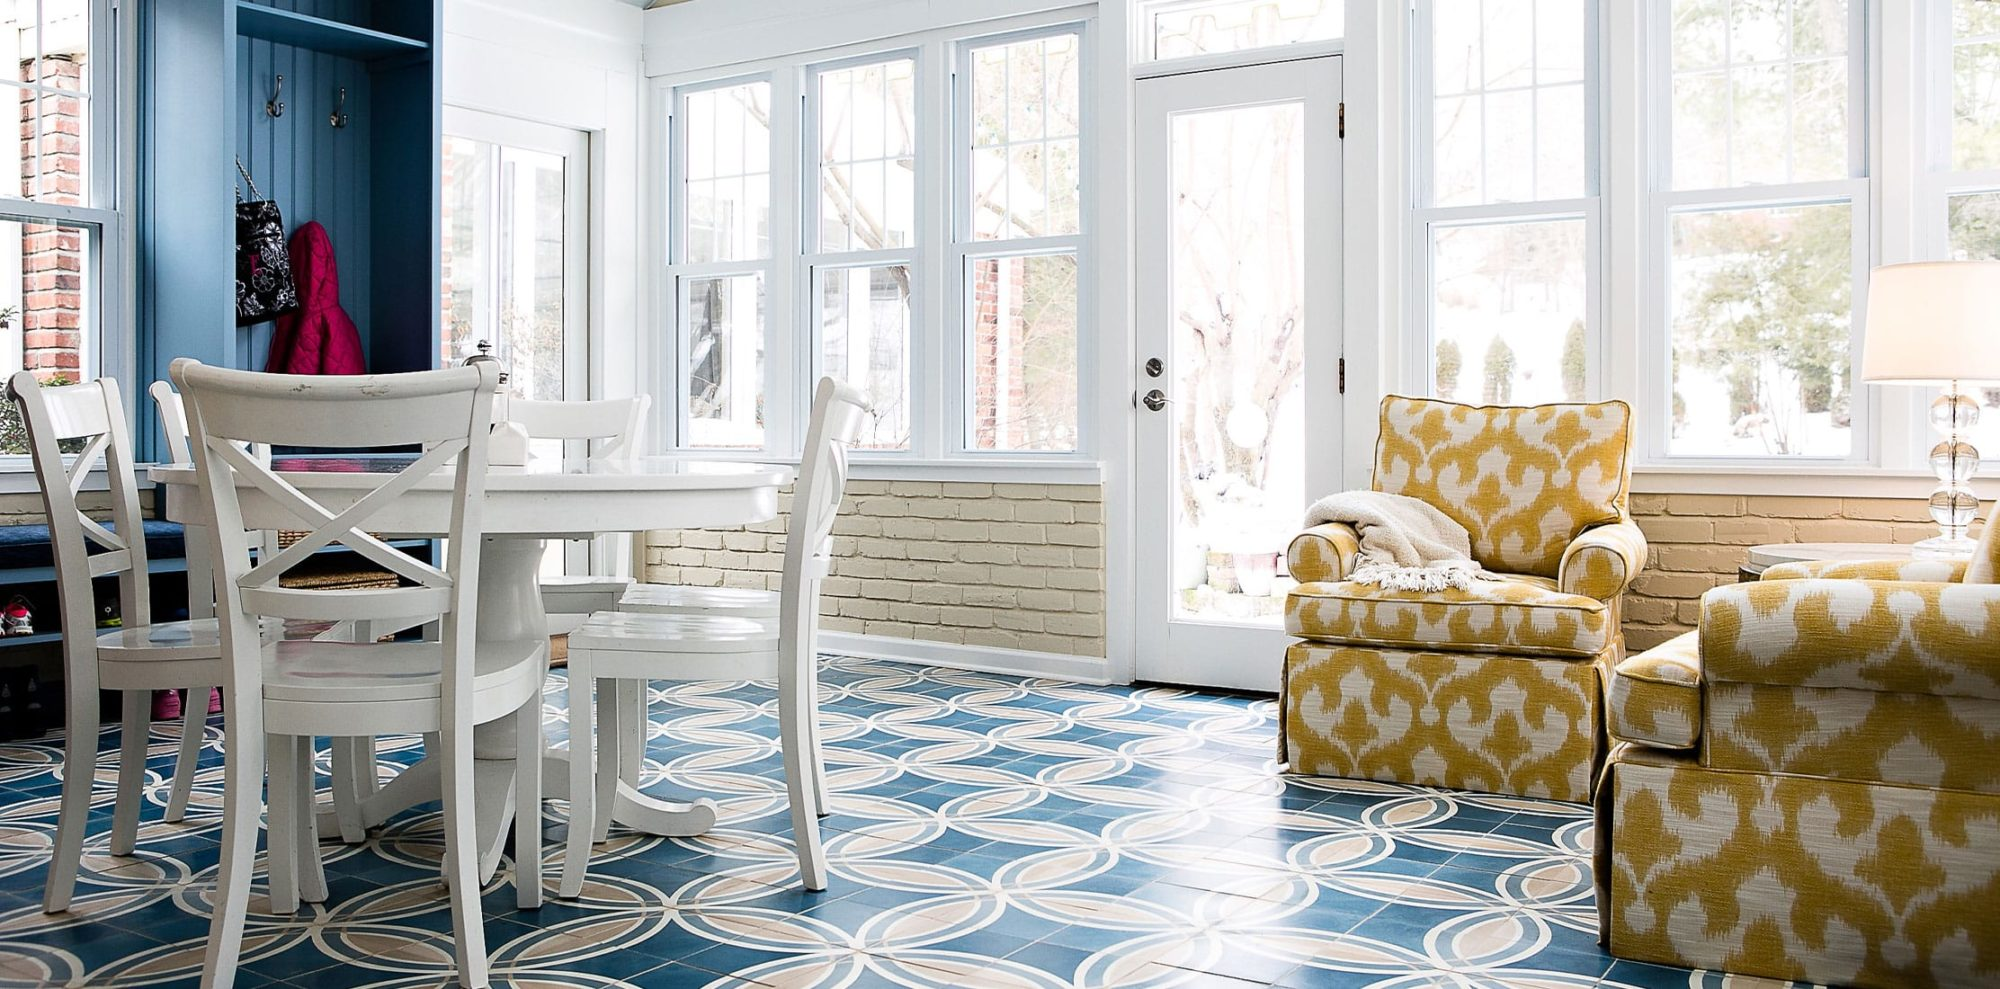 Wide angle of blue pattern tiles and bright yellow lounge chairs in sunroom